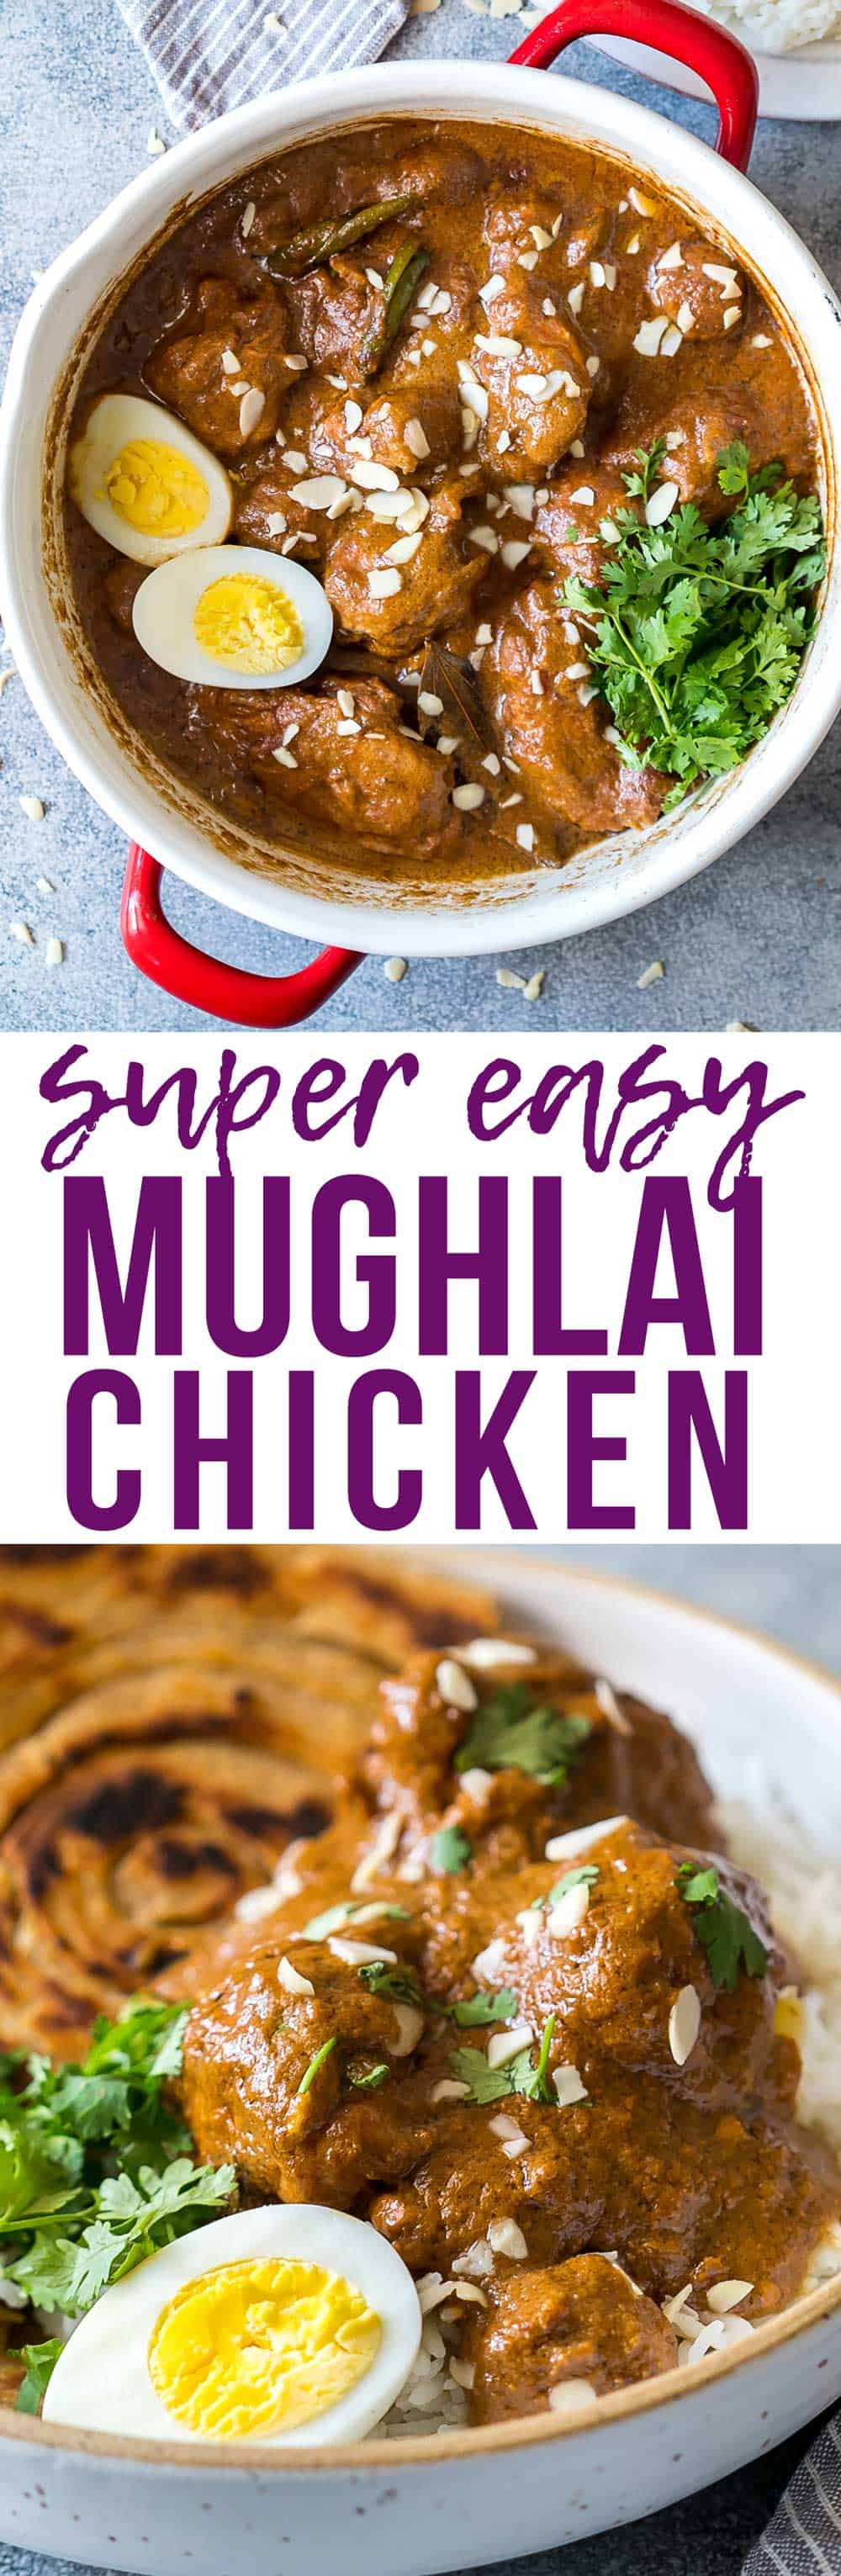 Mughlai Chicken – Easy, Restaurant Style, North Indian Recipe